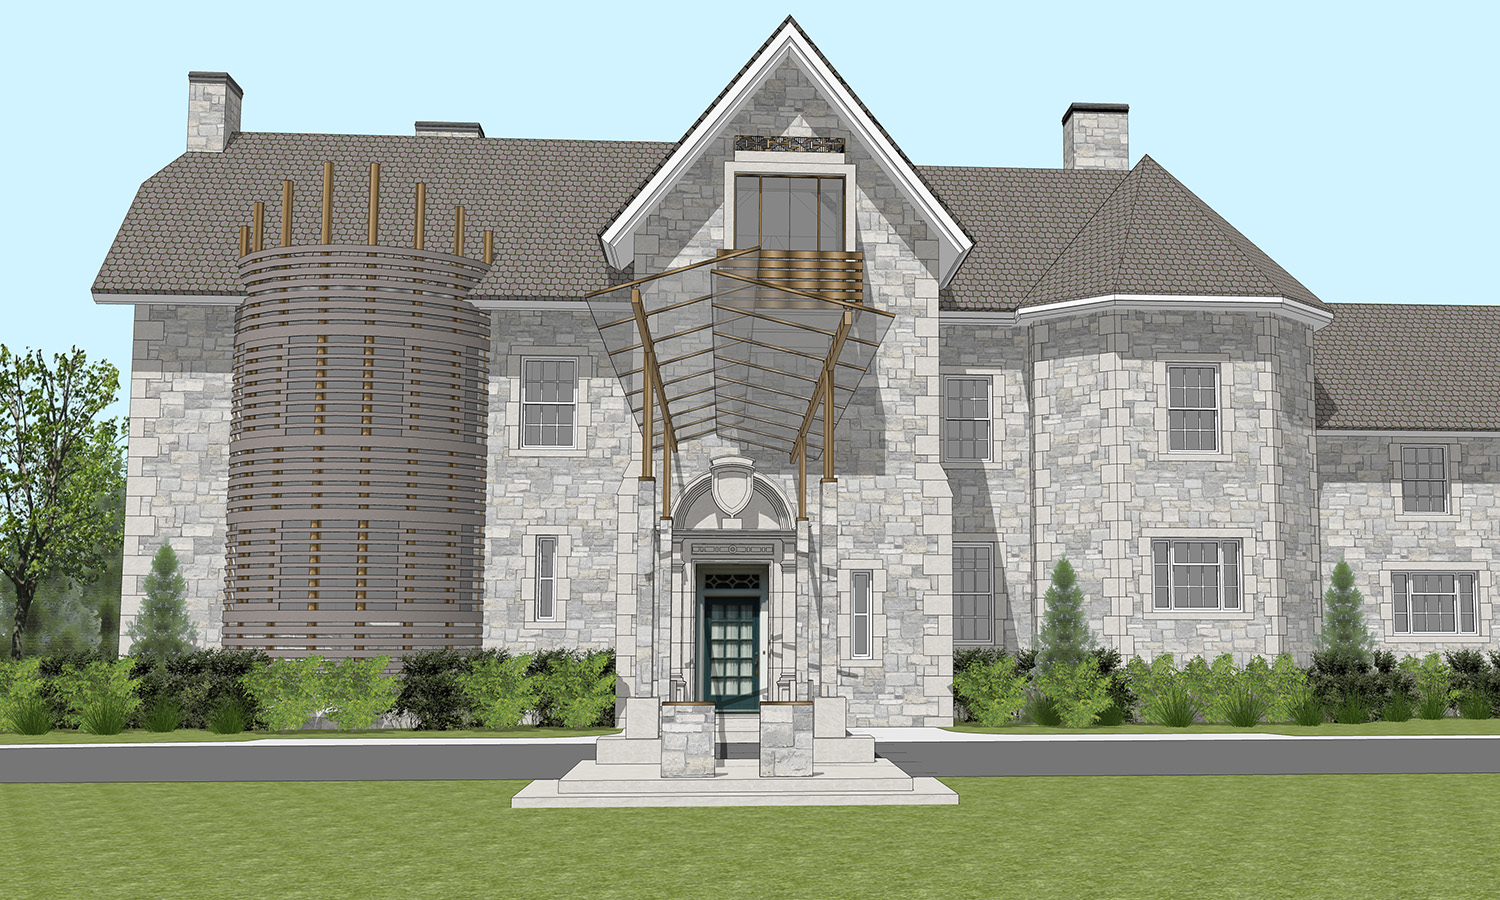 Front elevation of the main house complete with new reinterpreted architectural elements